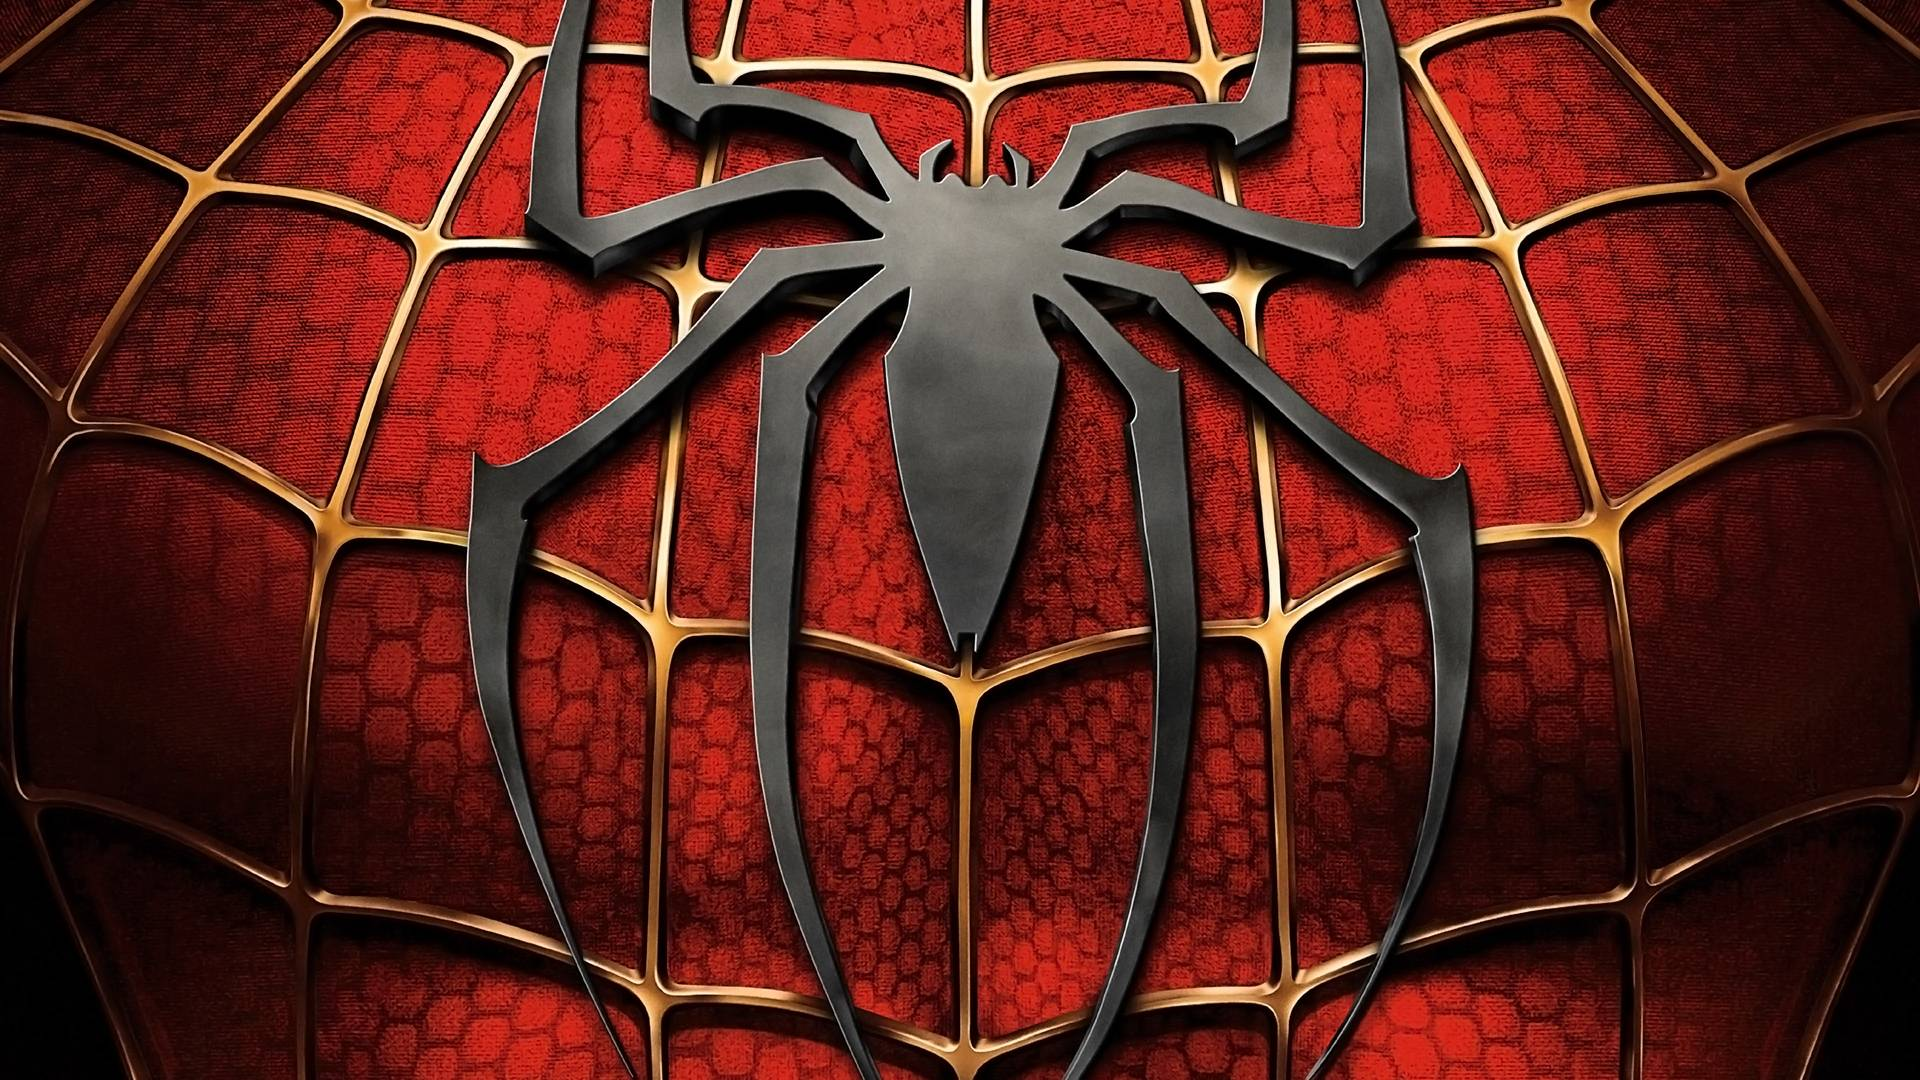 Spider-Man Backgrounds - Wallpaper Cave